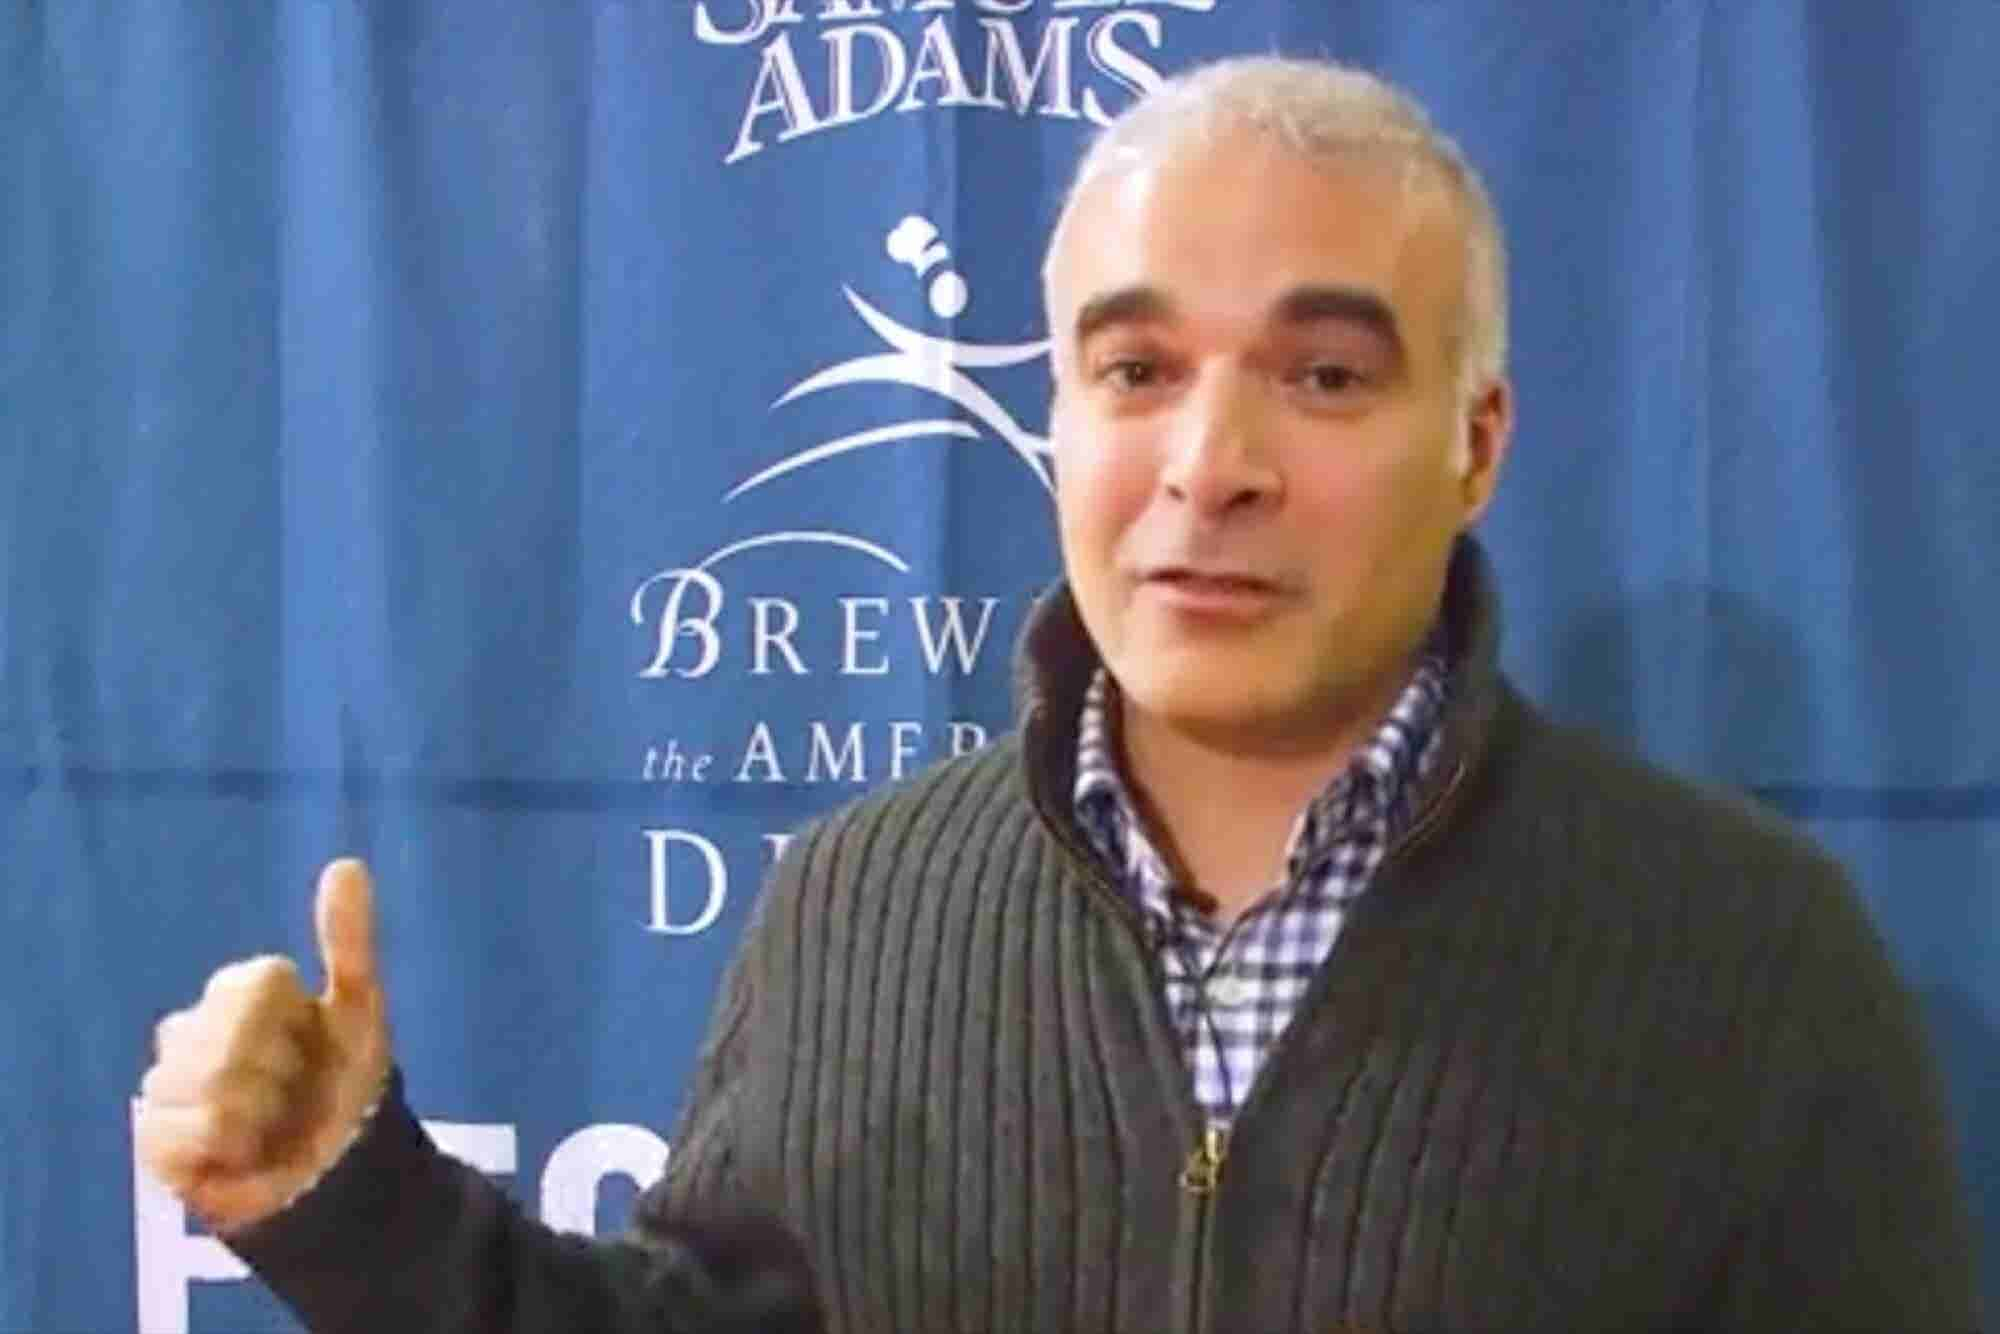 I Was a Judge for Samuel Adams's Food and Beer Contest